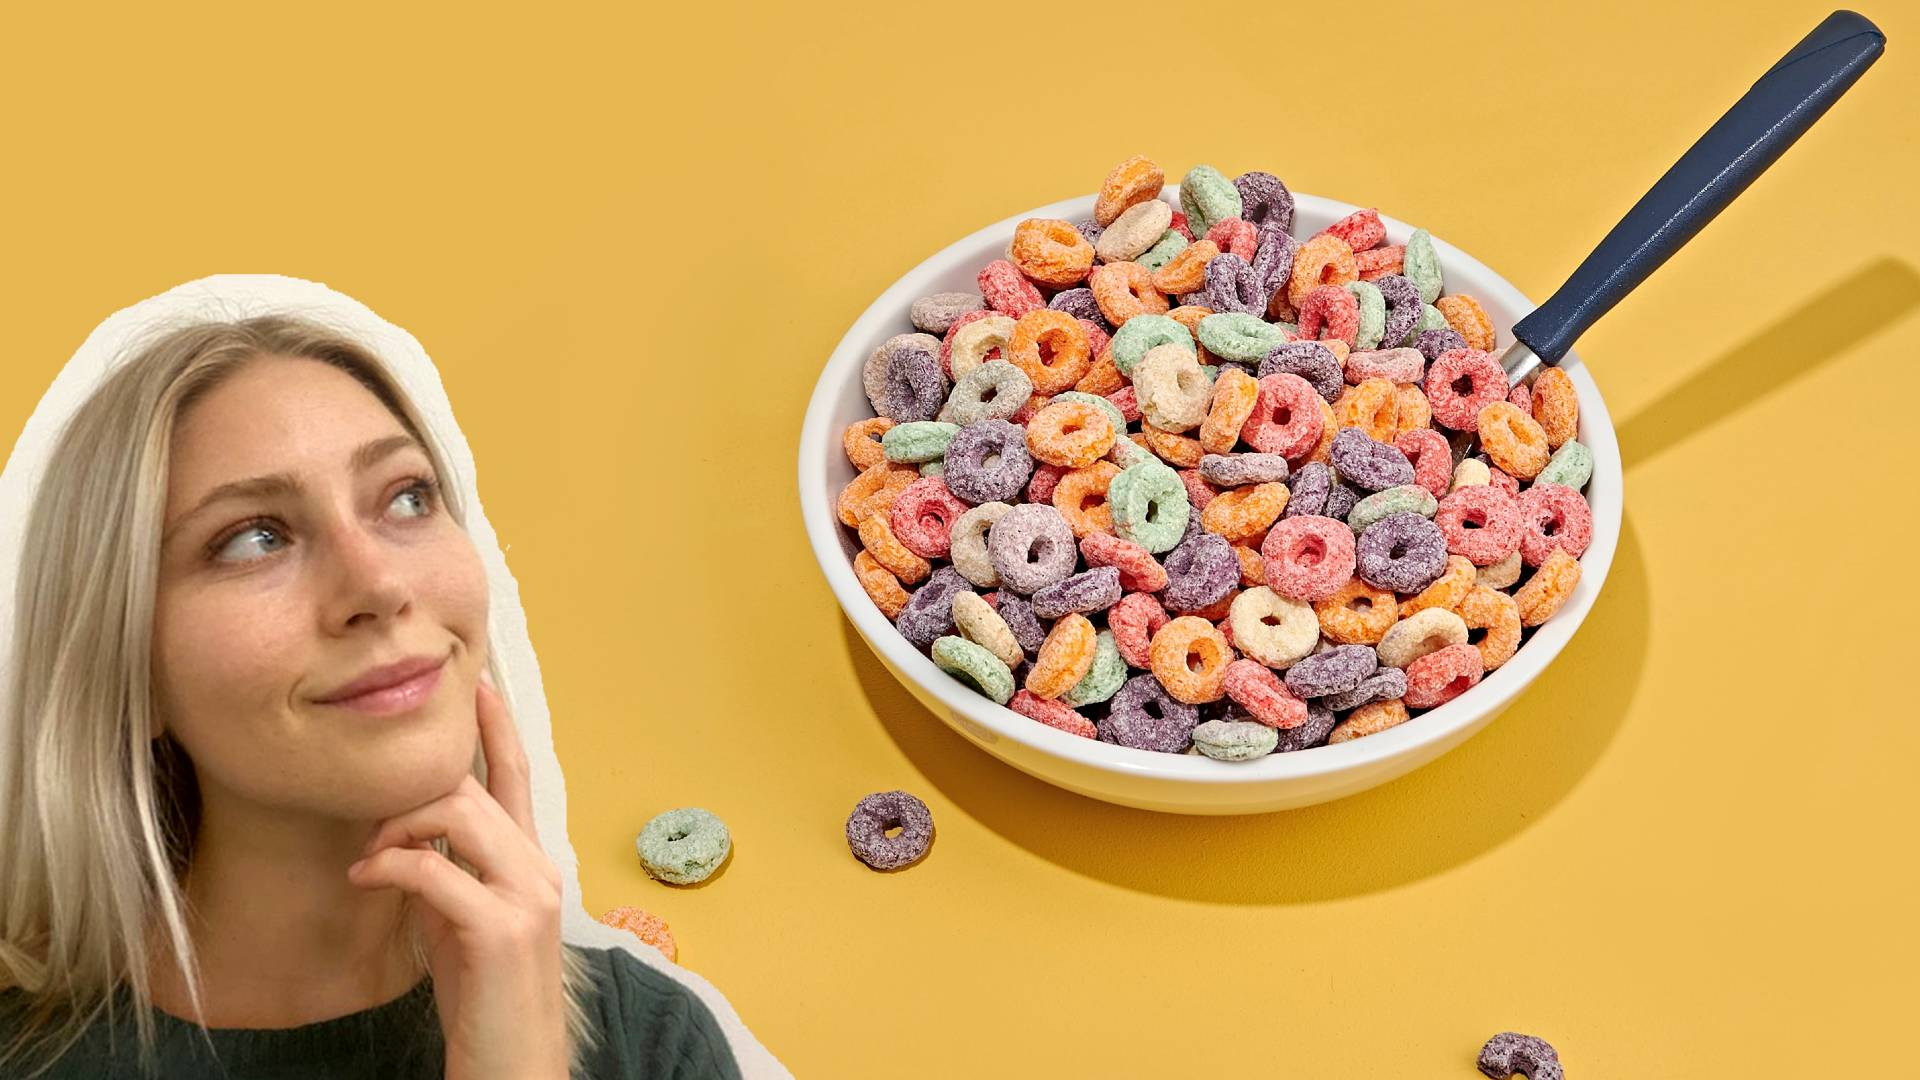 Canadian Woman with colourful cereal